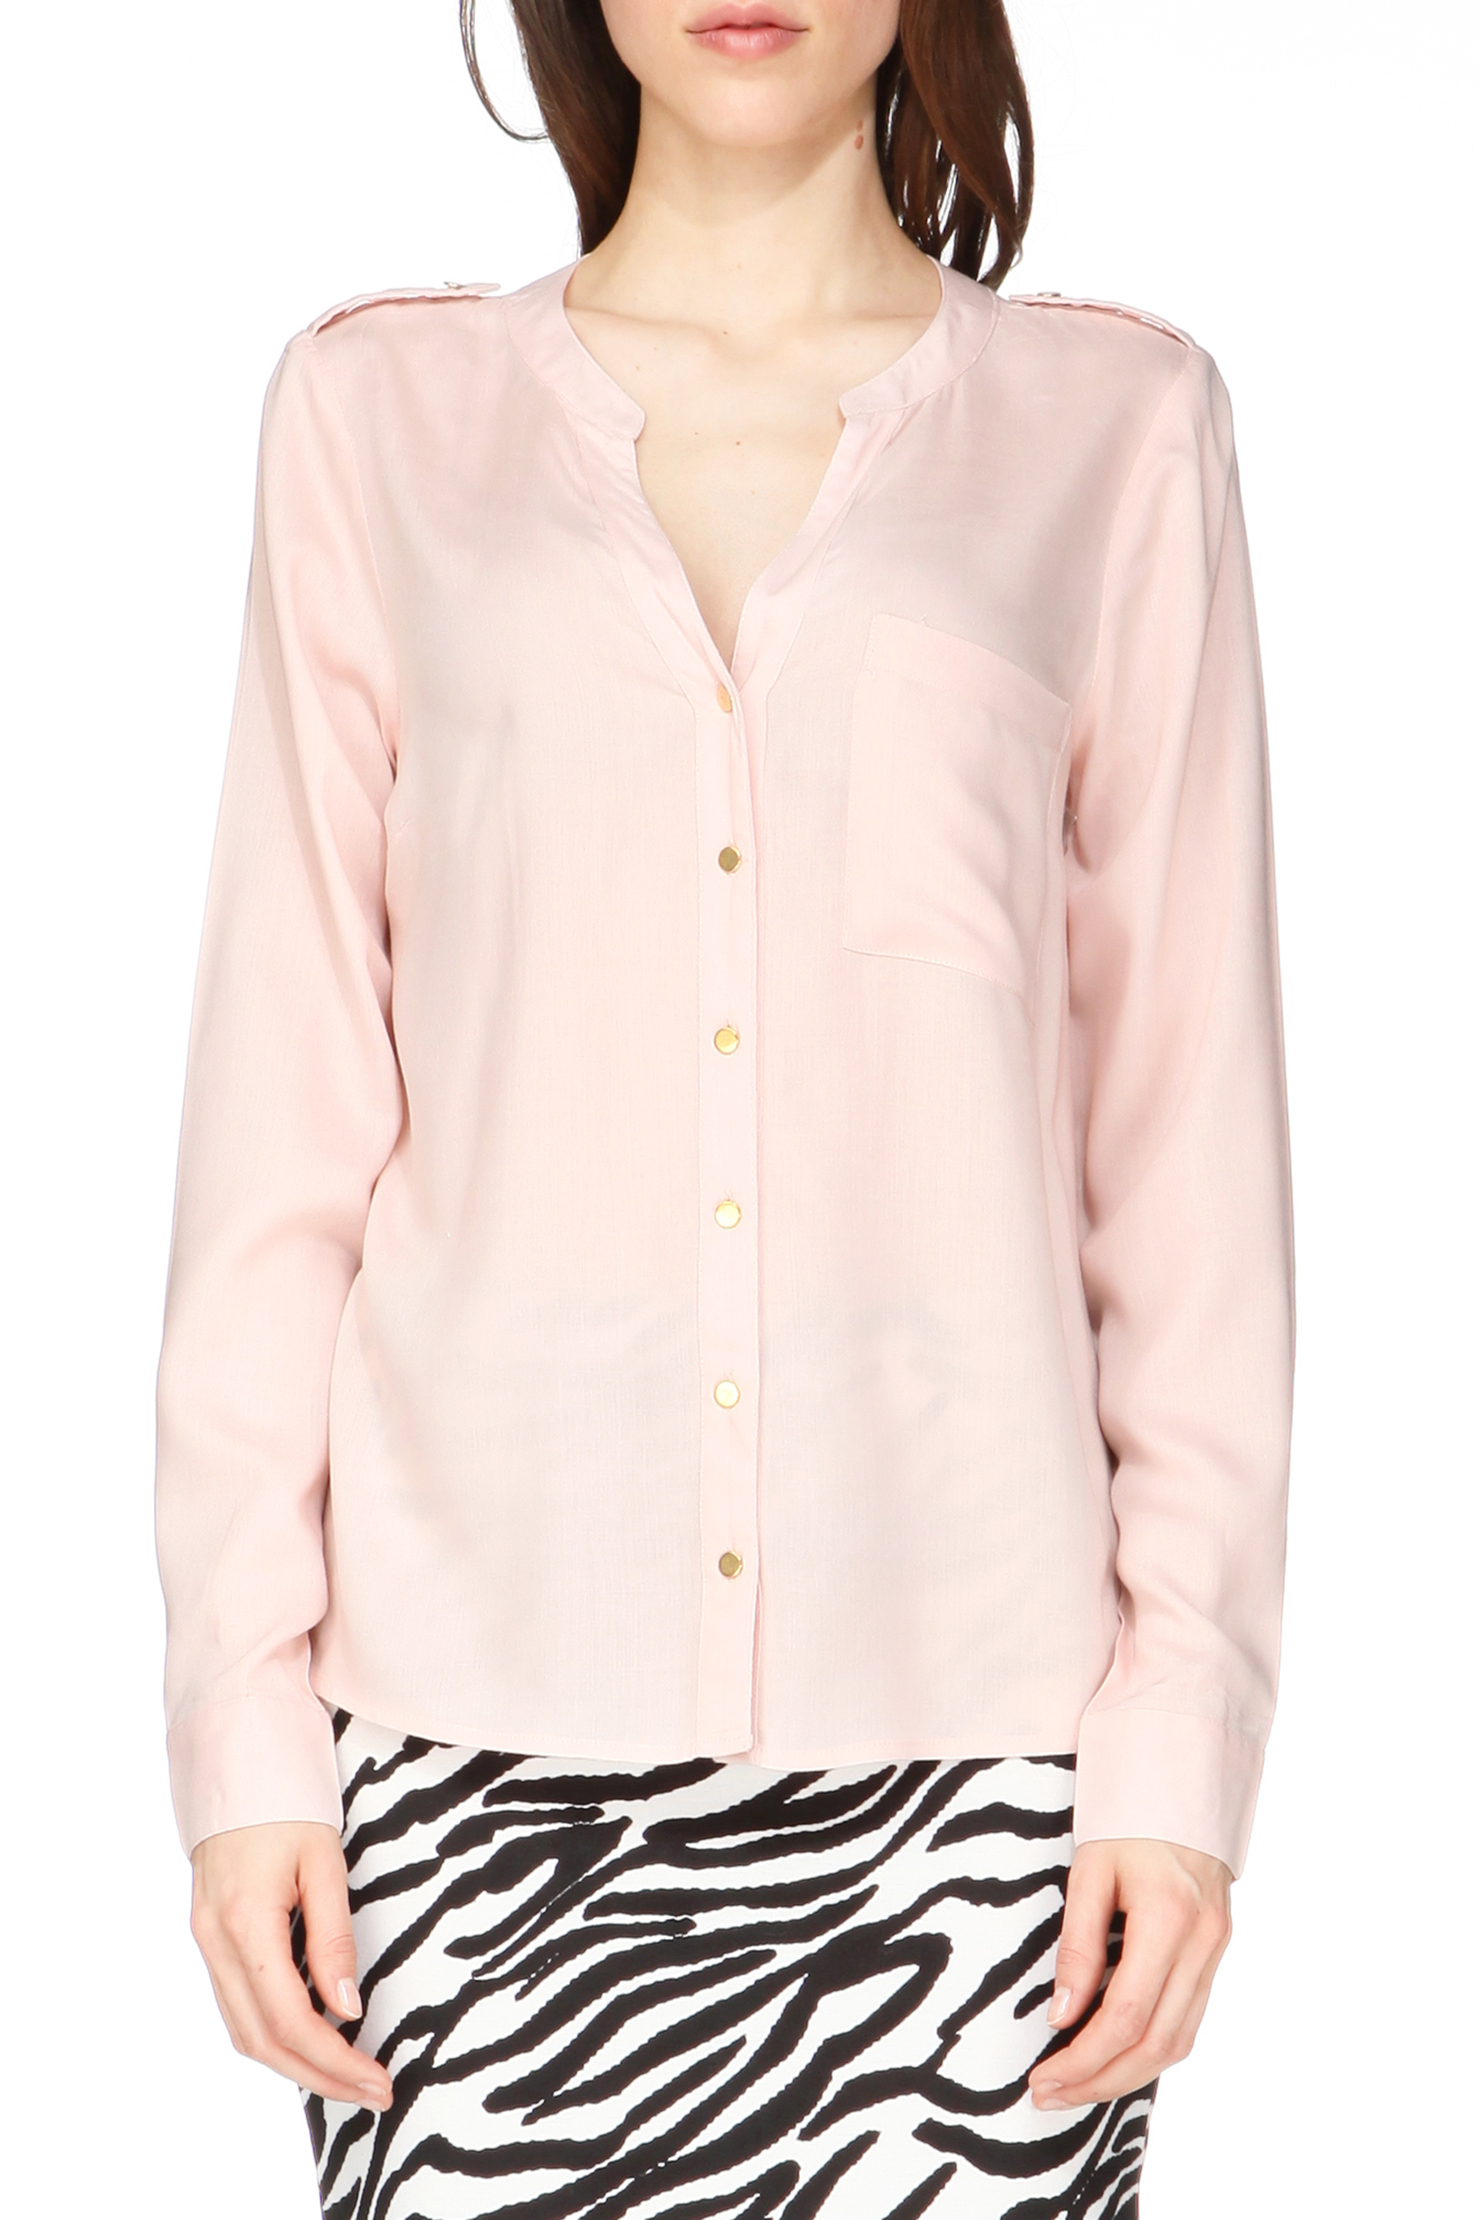 vero moda shirt blouse in pink lyst. Black Bedroom Furniture Sets. Home Design Ideas